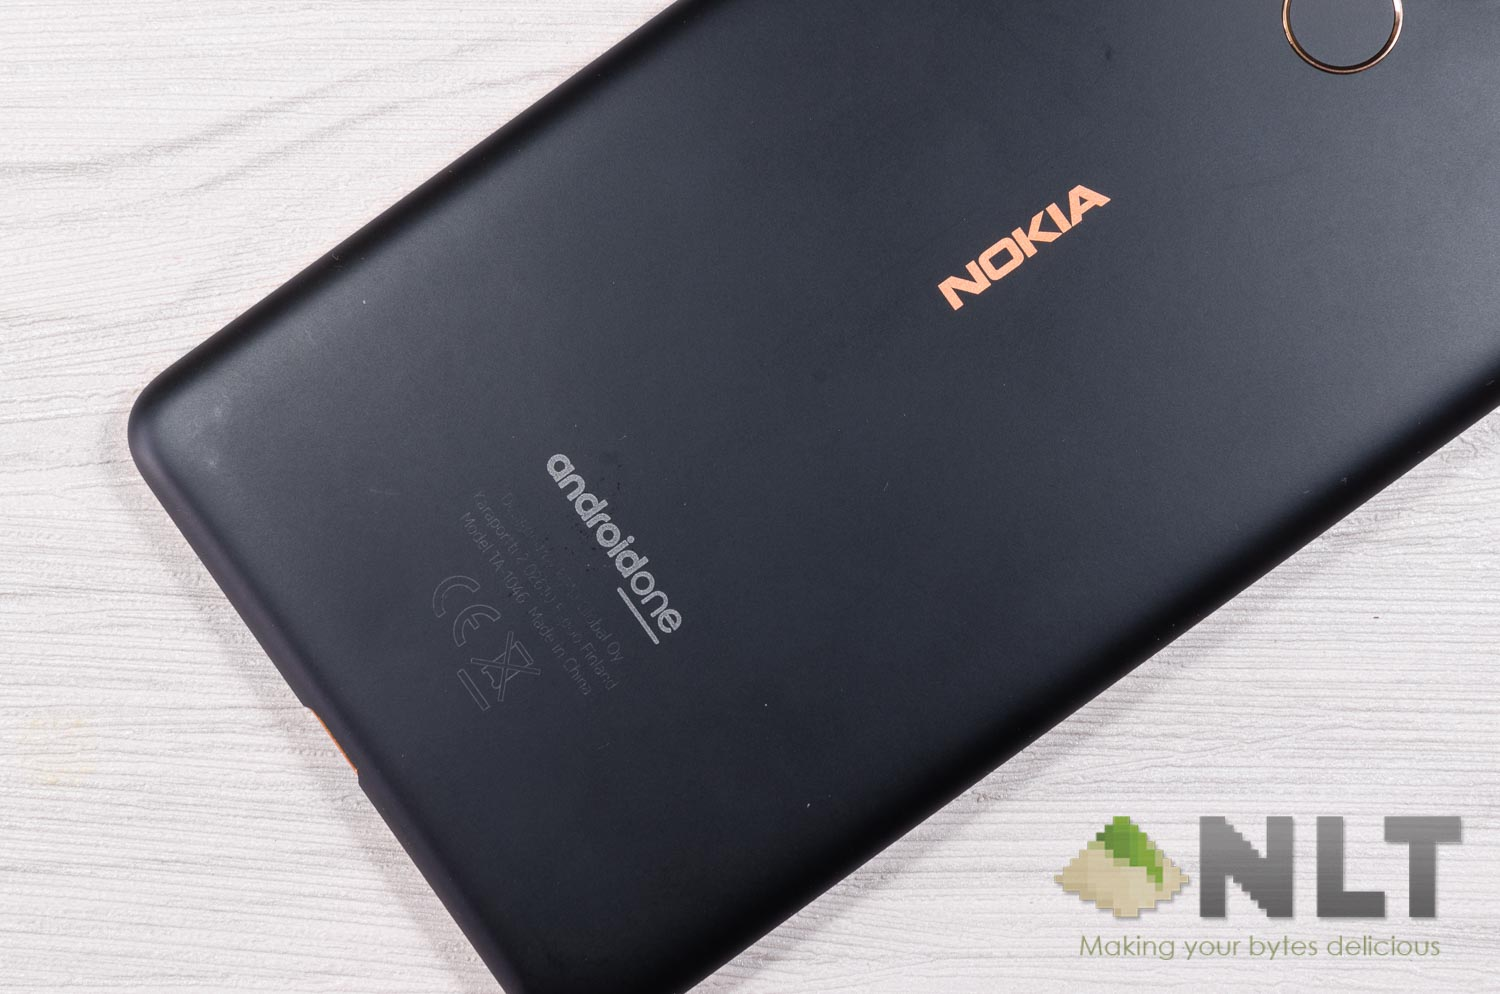 Nokia 7 Plus Wins Consumer Smartphone Of The Year For EISA Awards